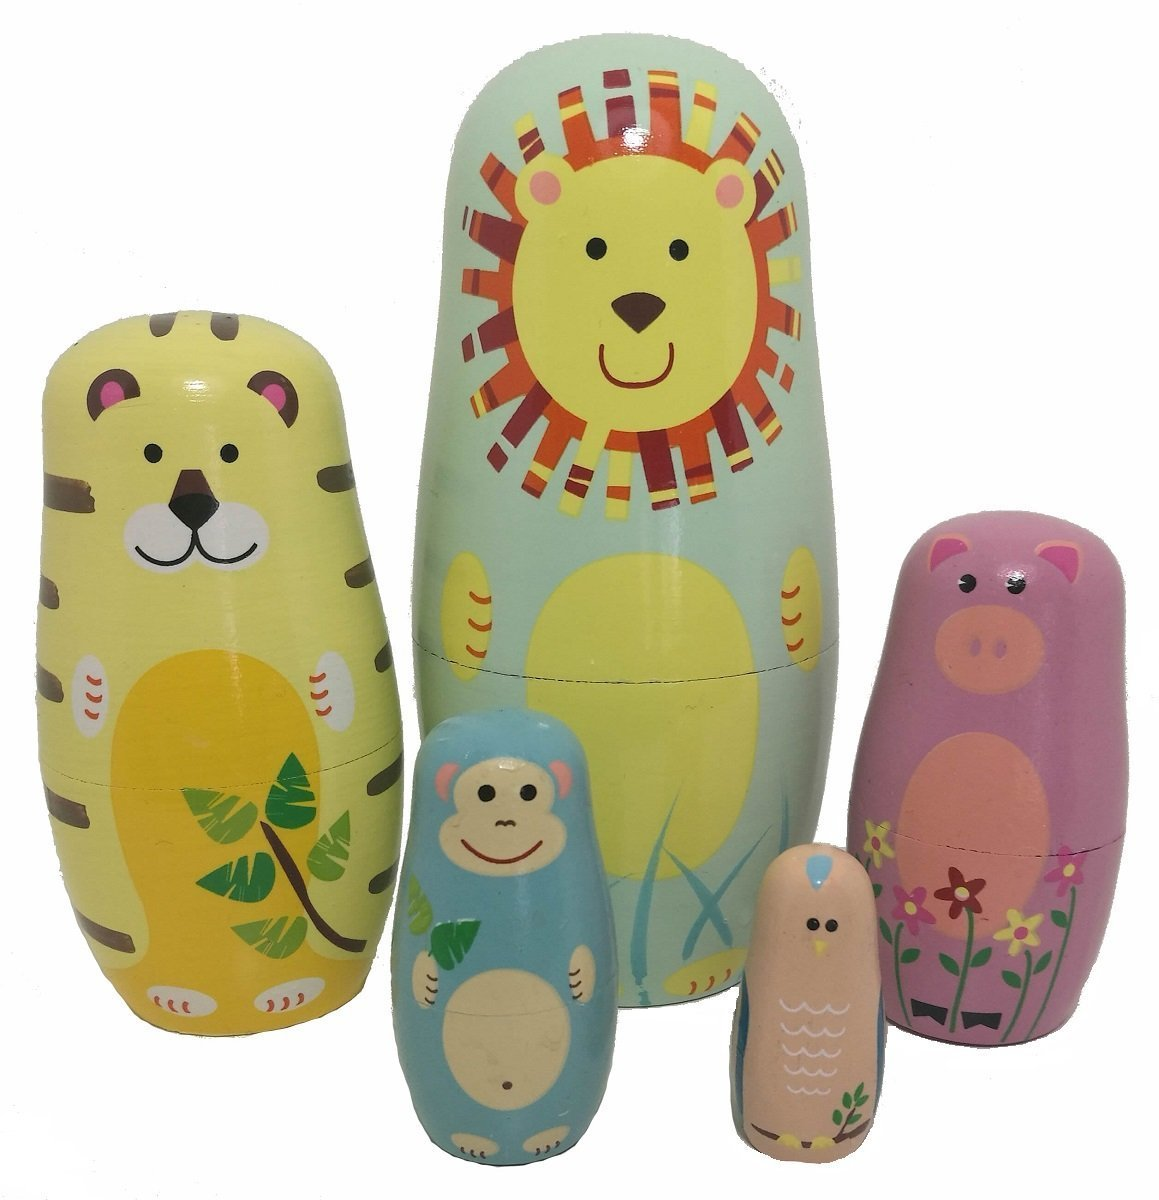 EVINIS 5 Pcs Cute Animal Doll Wooden Russian Nesting Dolls Matryoshka Wood Nested Stacking Dolls